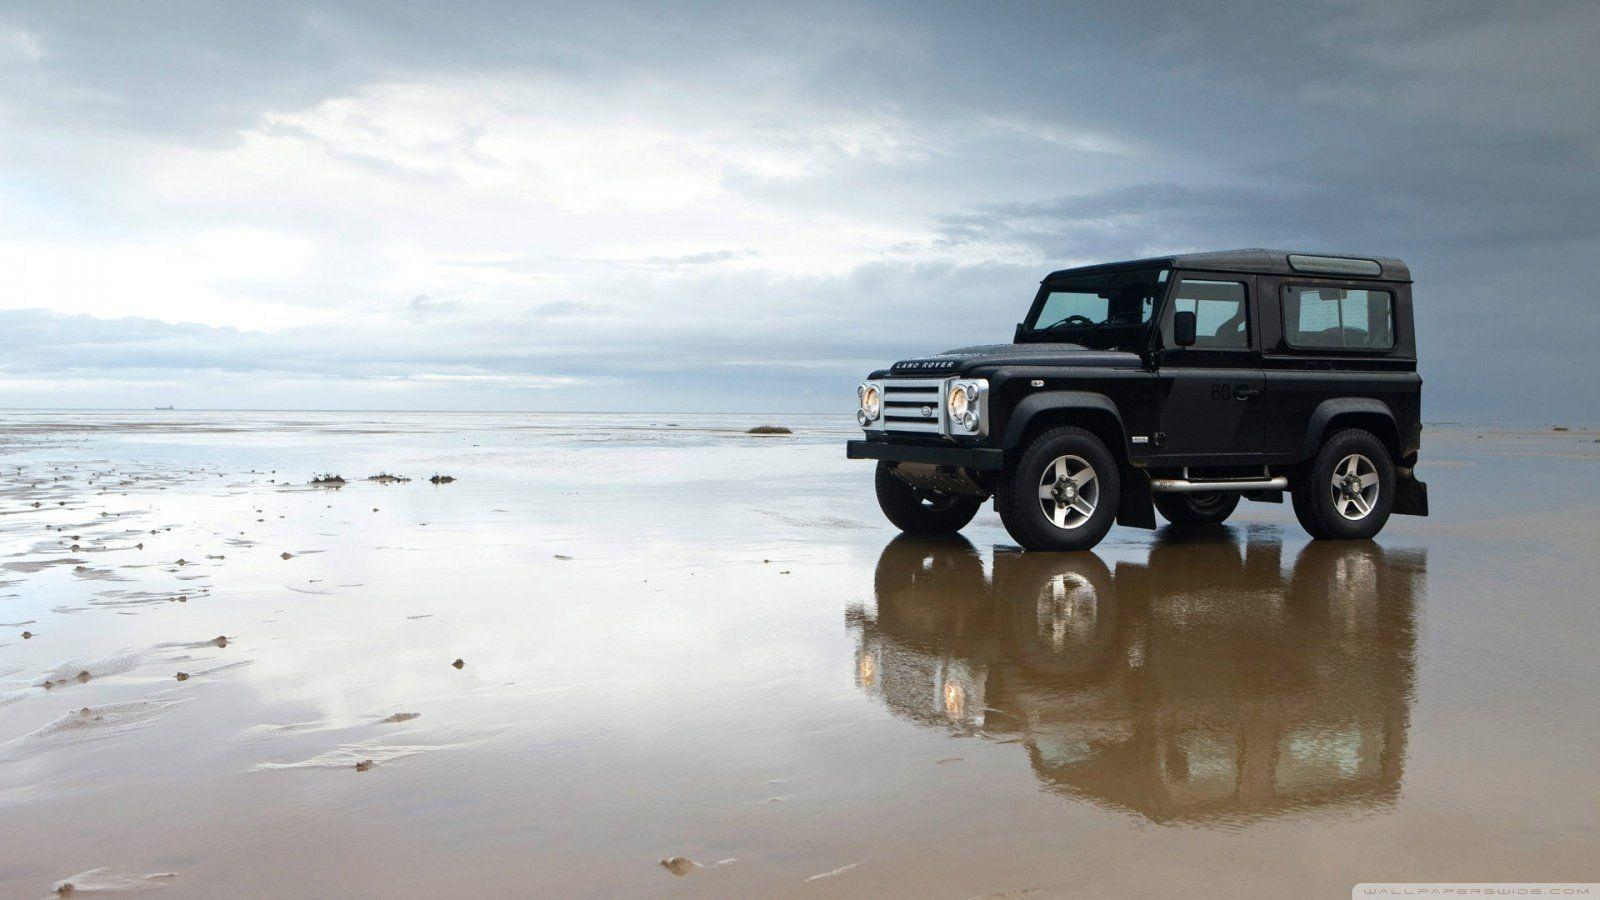 27 Land Rover Defender HD Wallpapers | Backgrounds - Wallpaper Abyss